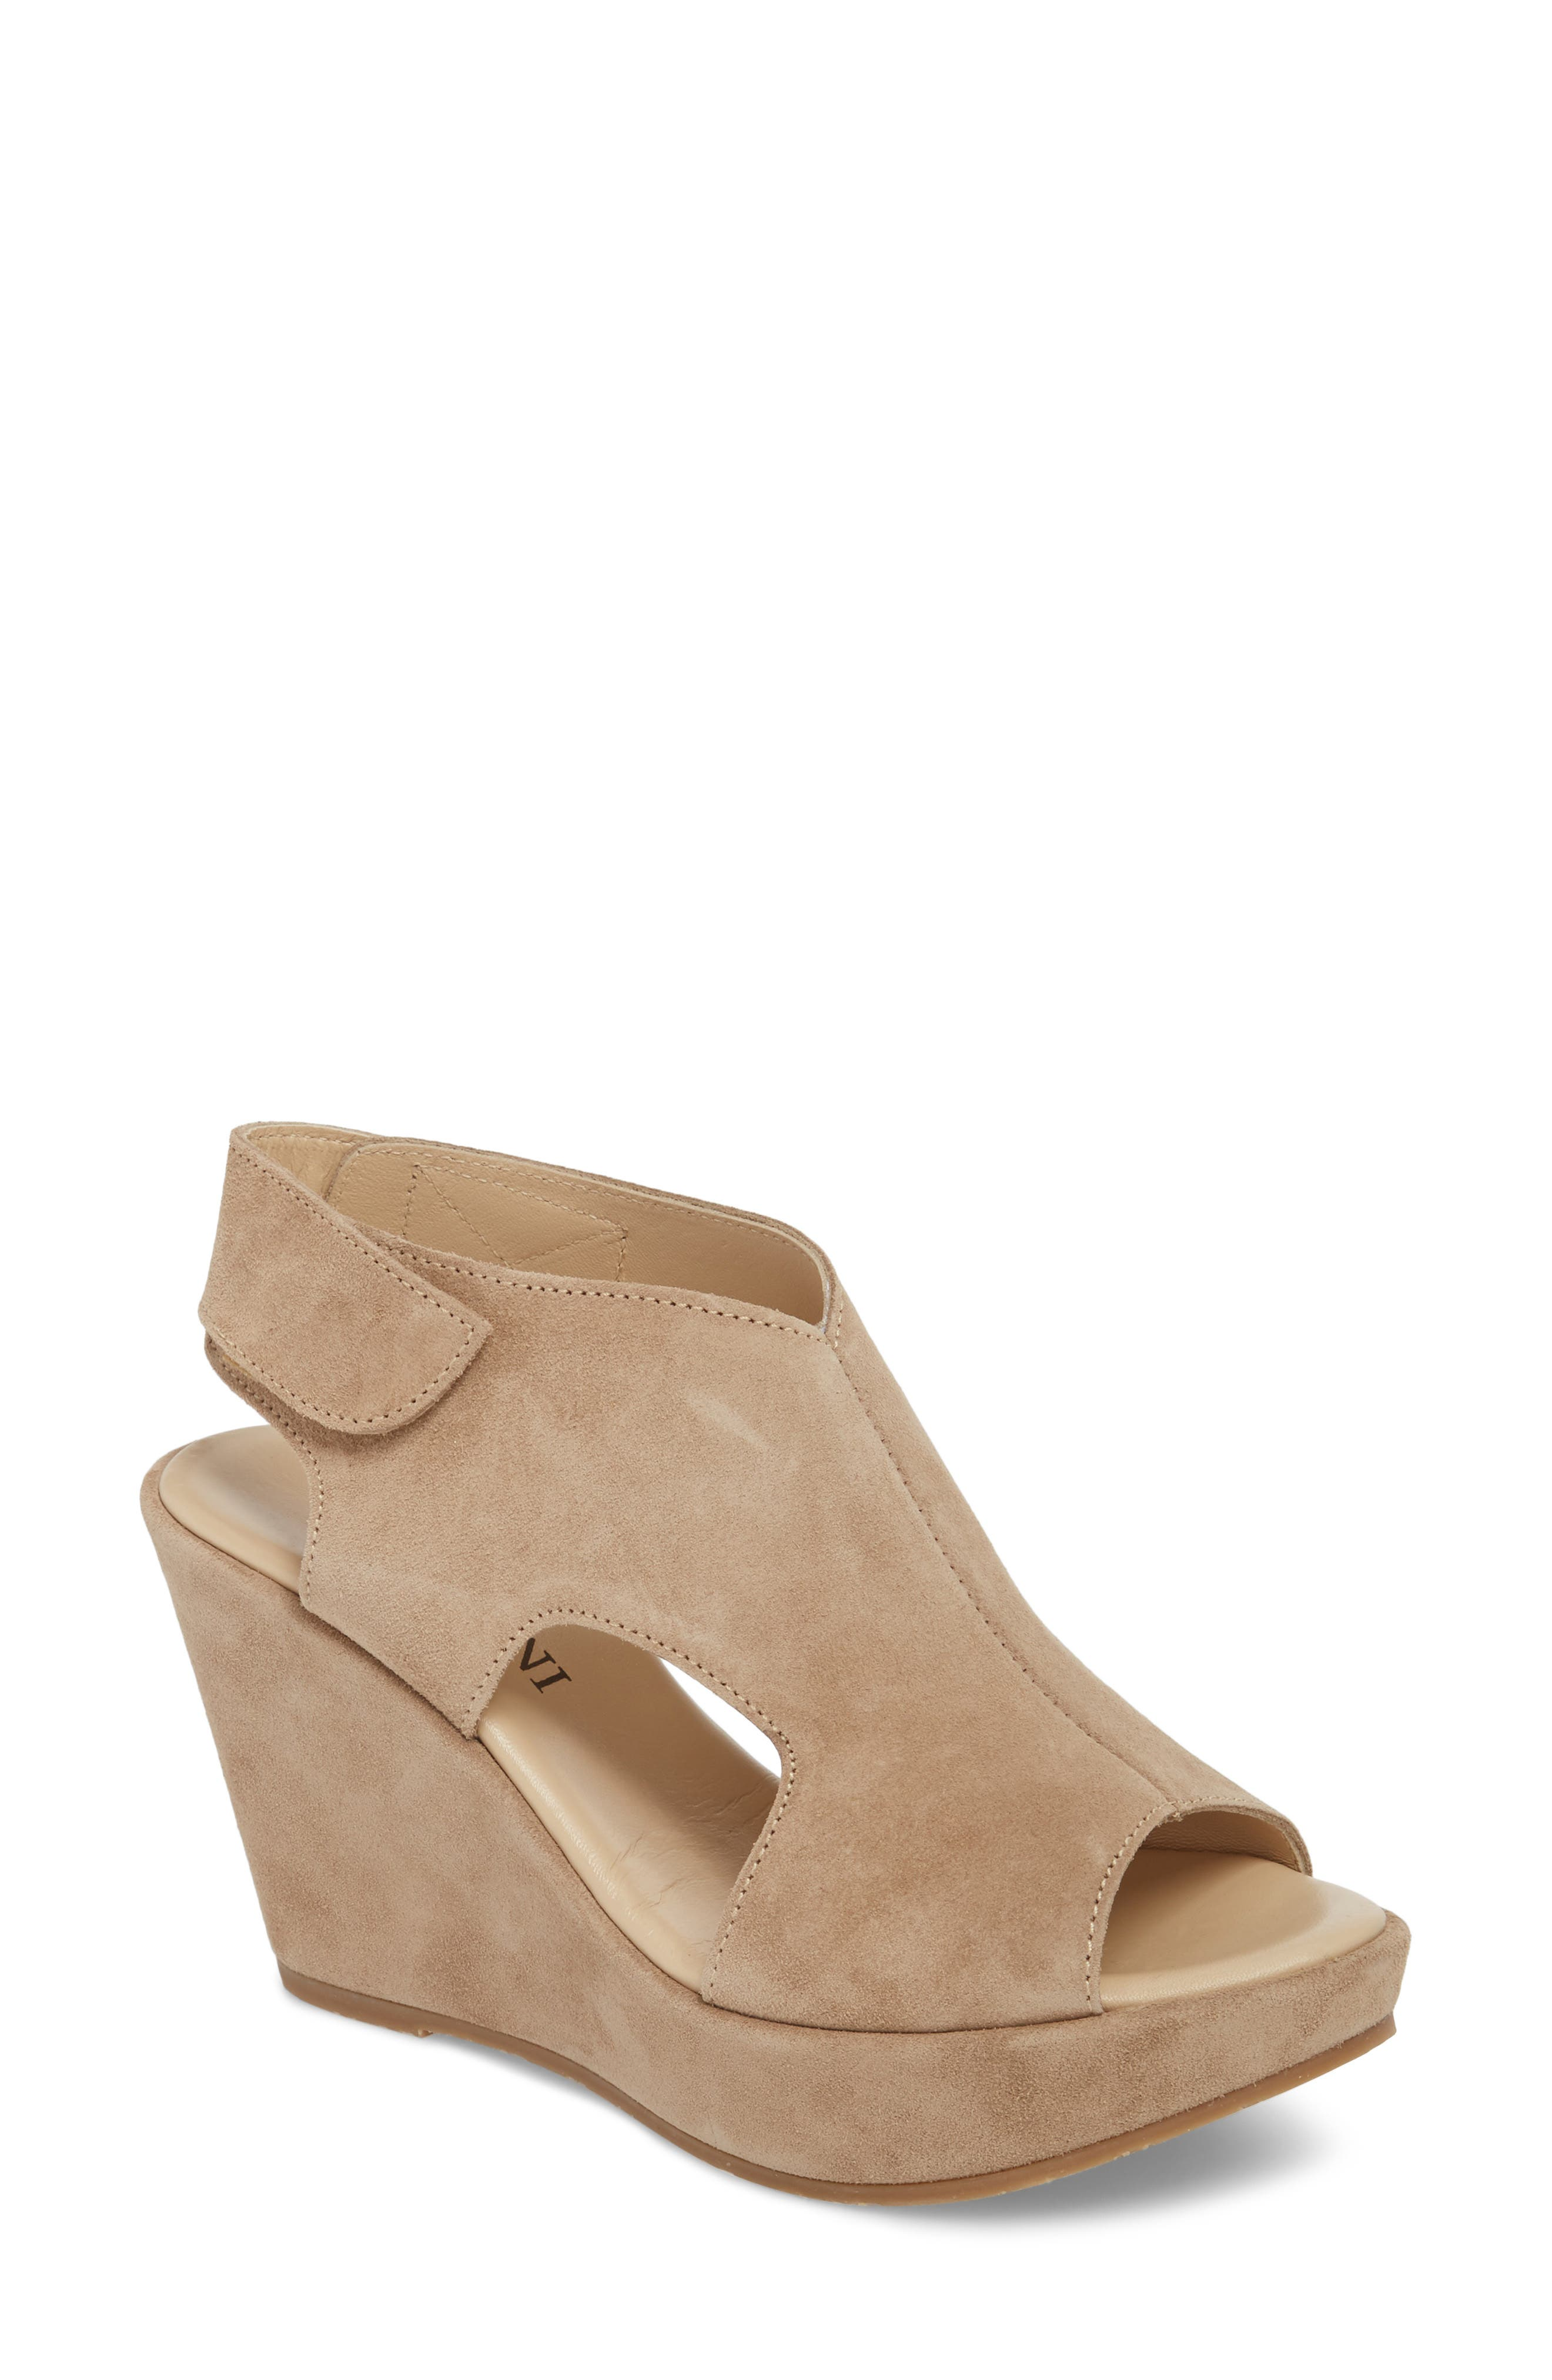 Reed Wedge Sandal,                         Main,                         color, Corda Taupe Suede